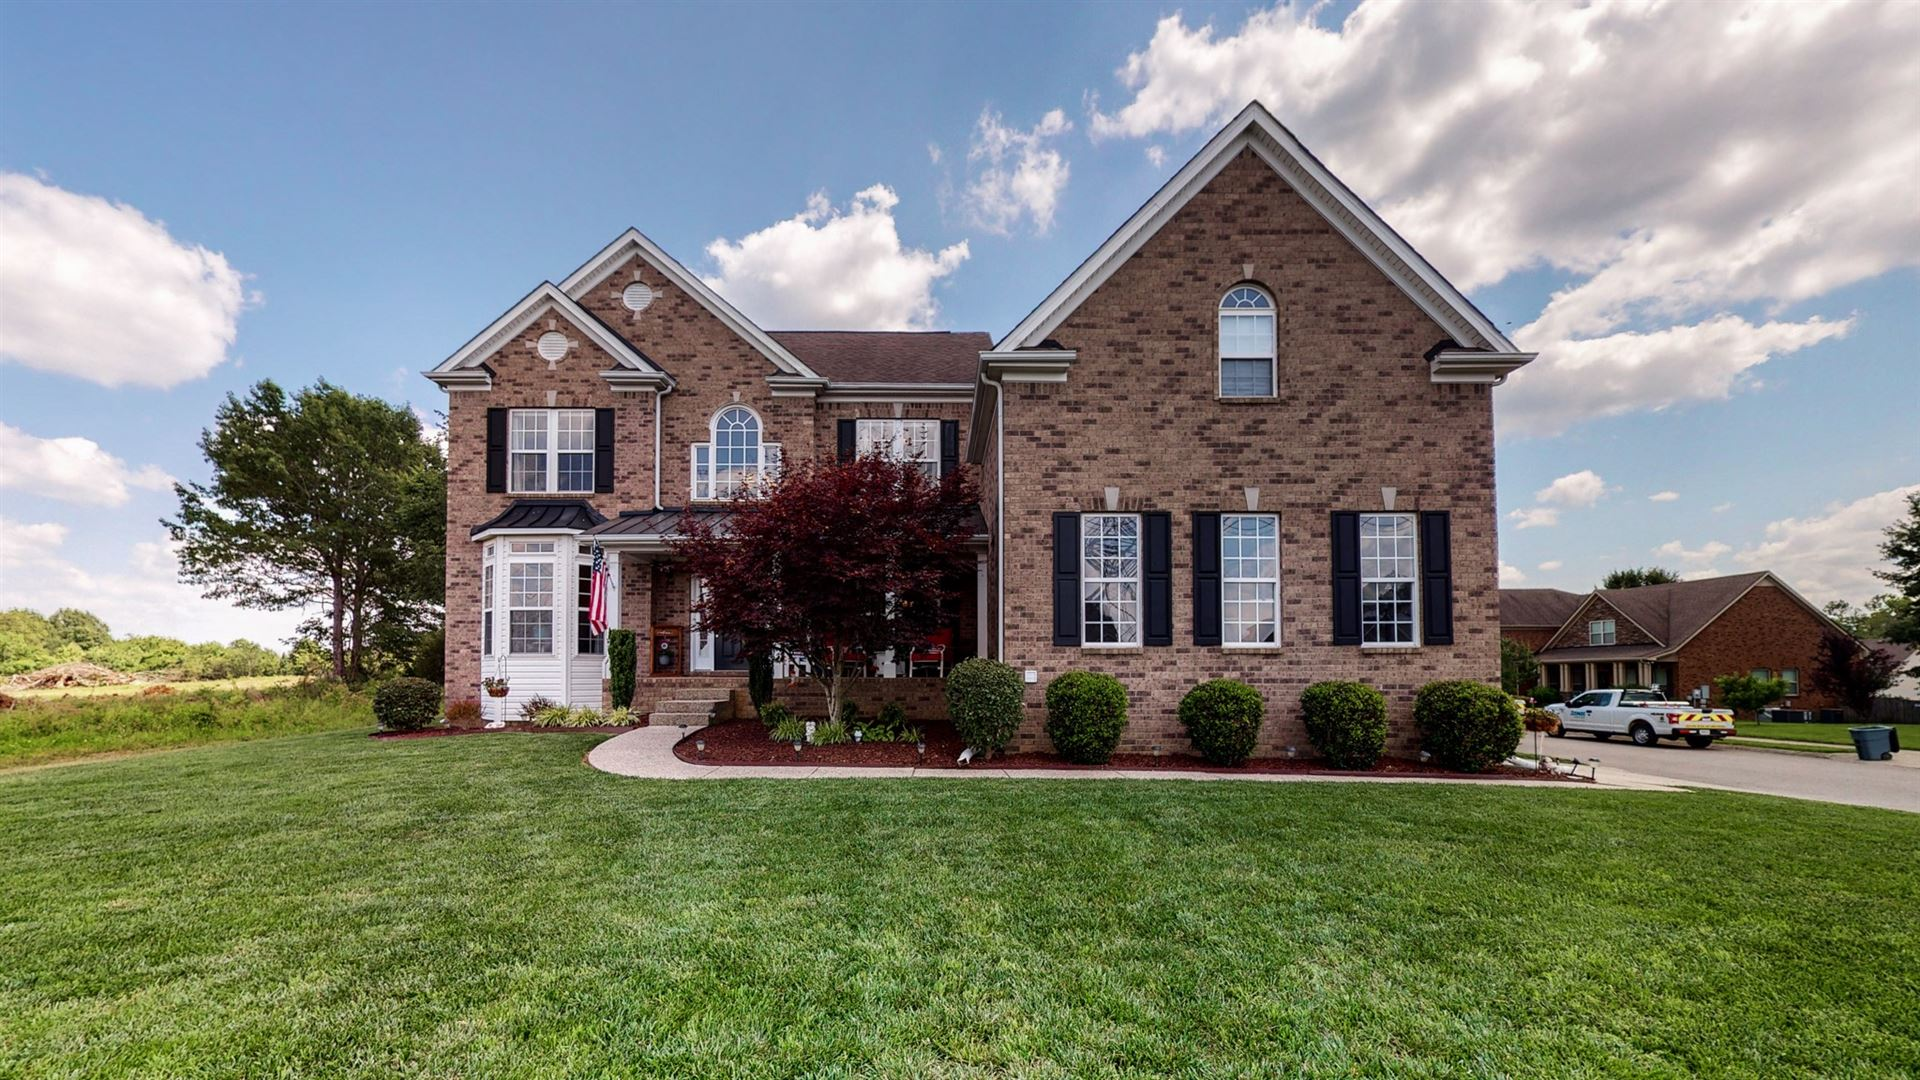 3008 Manchester Dr, Spring Hill, TN 37174 - MLS#: 2195634